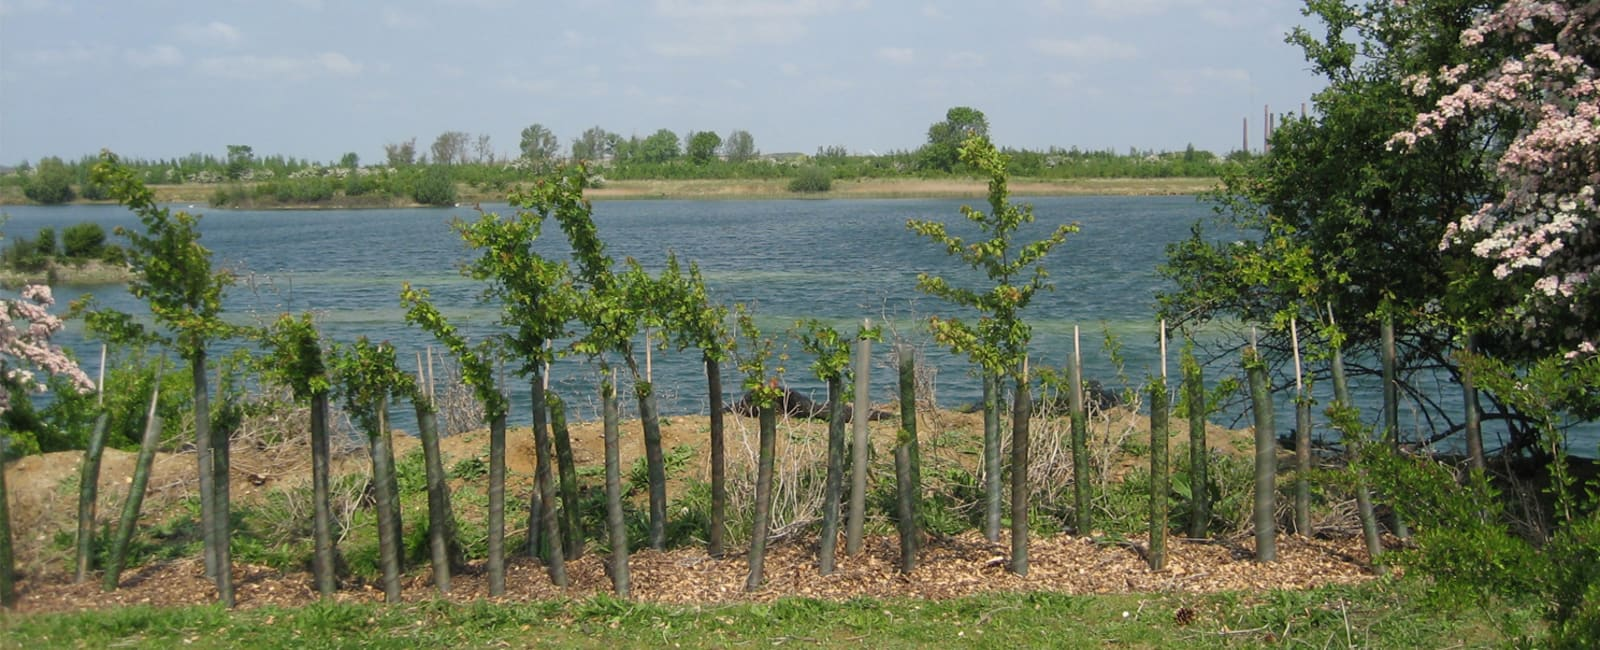 A row of saplings by water